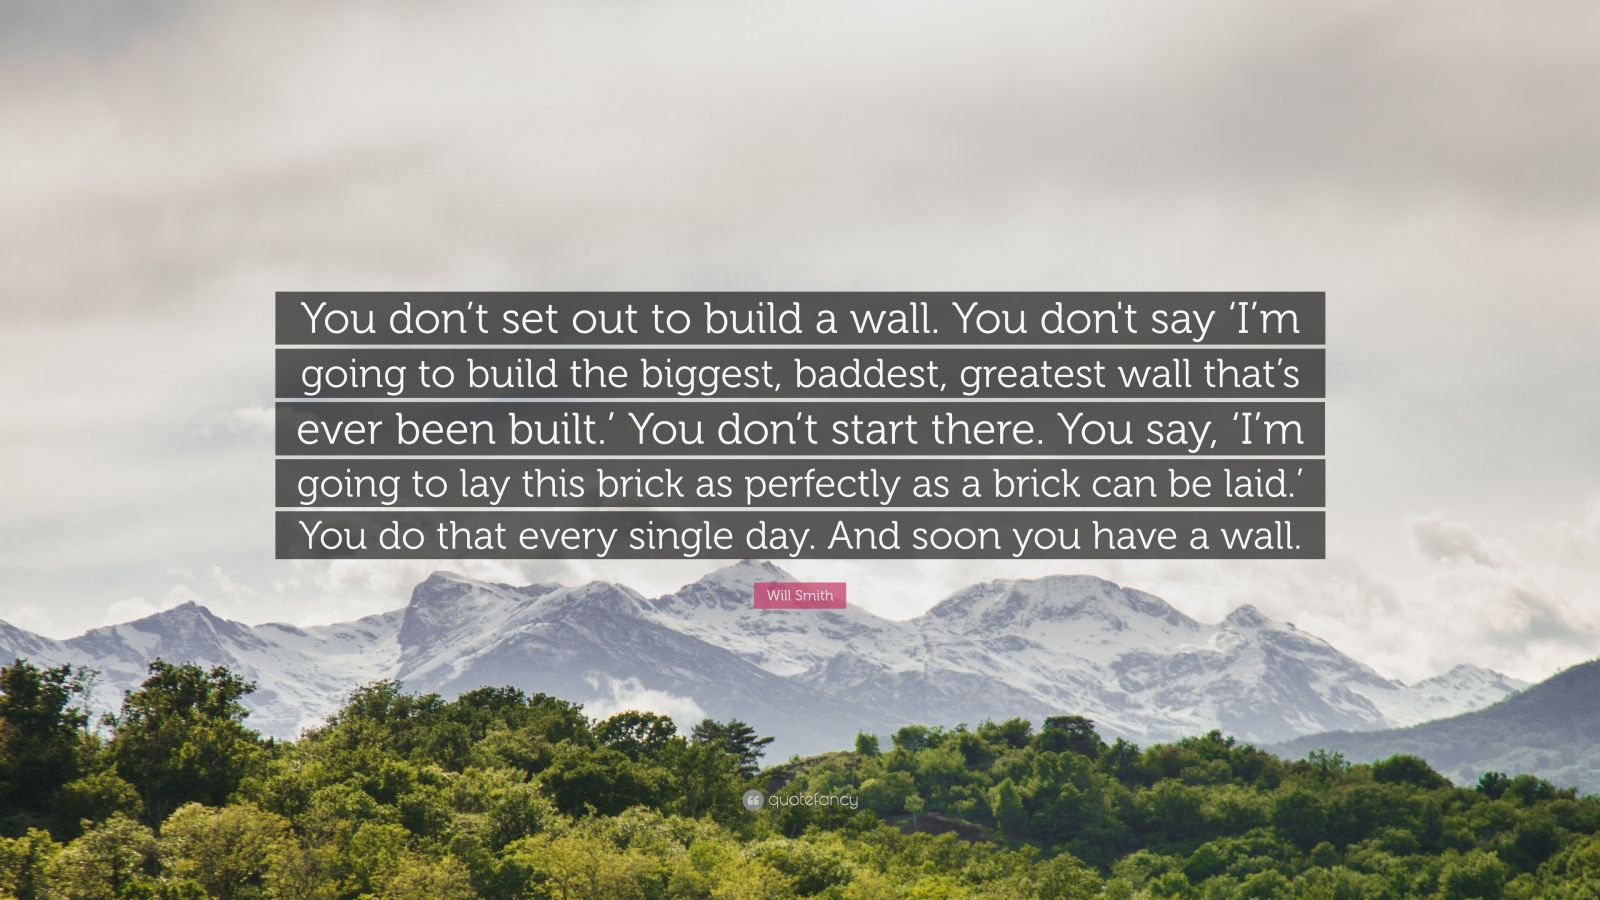 """Will Smith Quote: """"You don't set out to build a wall. You don't say 'I'm going to build the biggest, baddest, greatest wall that's ever been built.' You don't start there. You say, 'I'm going to lay this brick as perfectly as a brick can be laid.' You do that every single day. And soon you have a wall."""""""